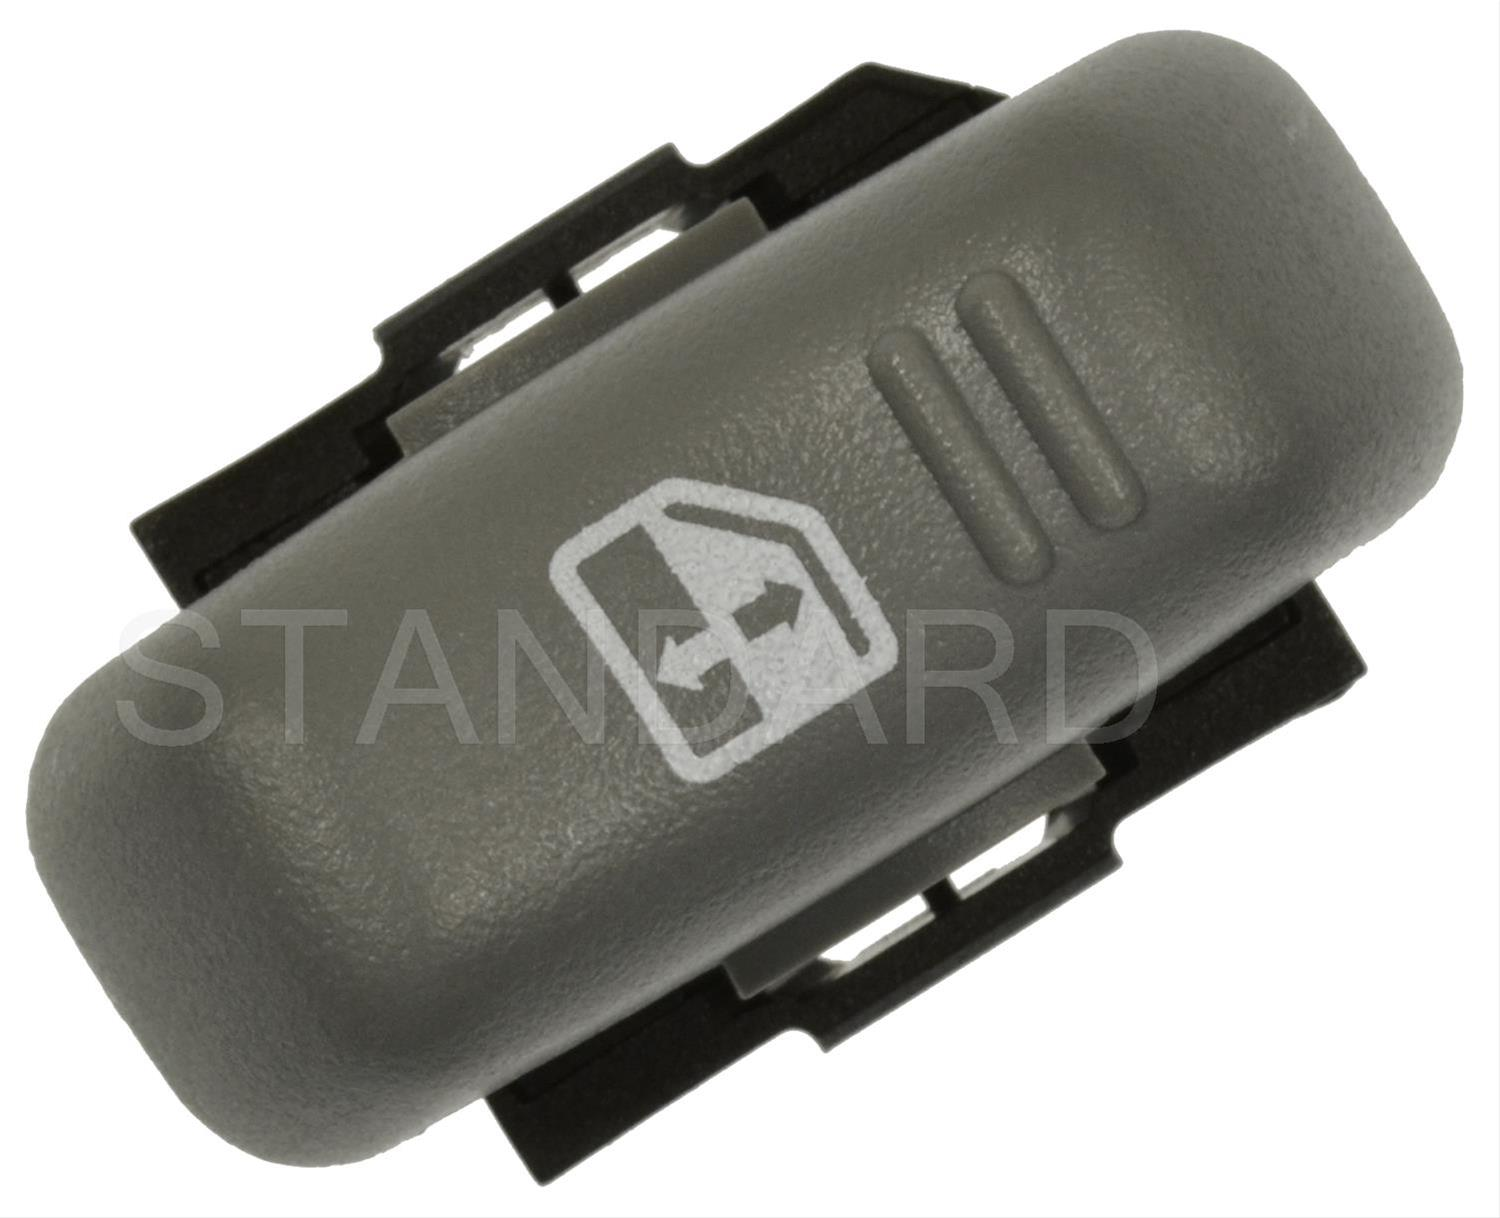 Standard Motor Products DWS-199 Power Window Switch